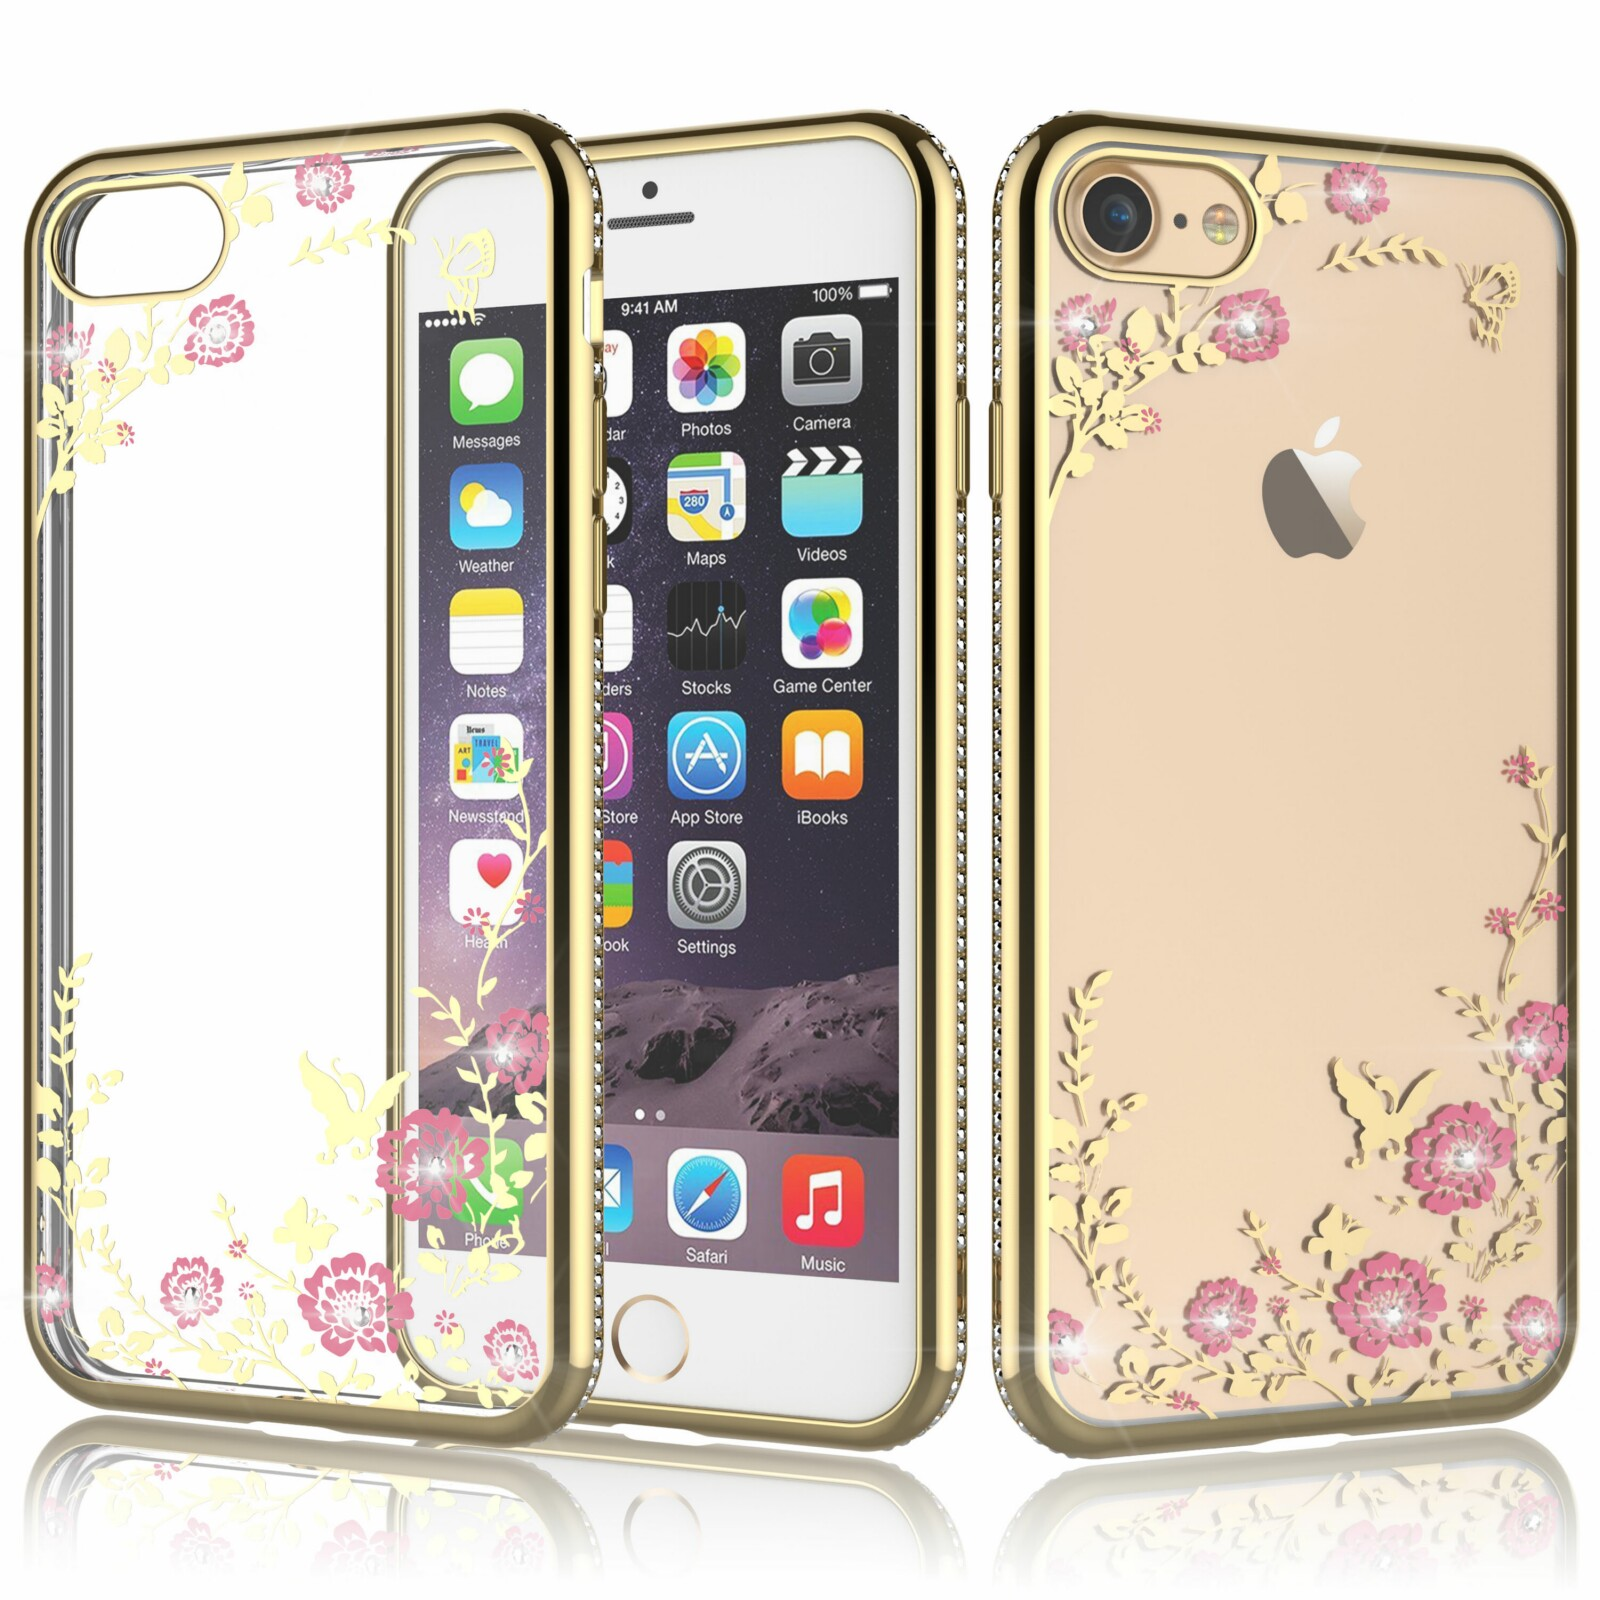 "iPhone 8 Case, iPhone 7 Clear Case, iPhone 7 Cover, Tekcoo [Tflower] Ultra Thin TPU Soft Case Artificial Rhinestone Diamond Cover For Apple iPhone 7 / iPhone 8 4.7"" -Champagne Gold"